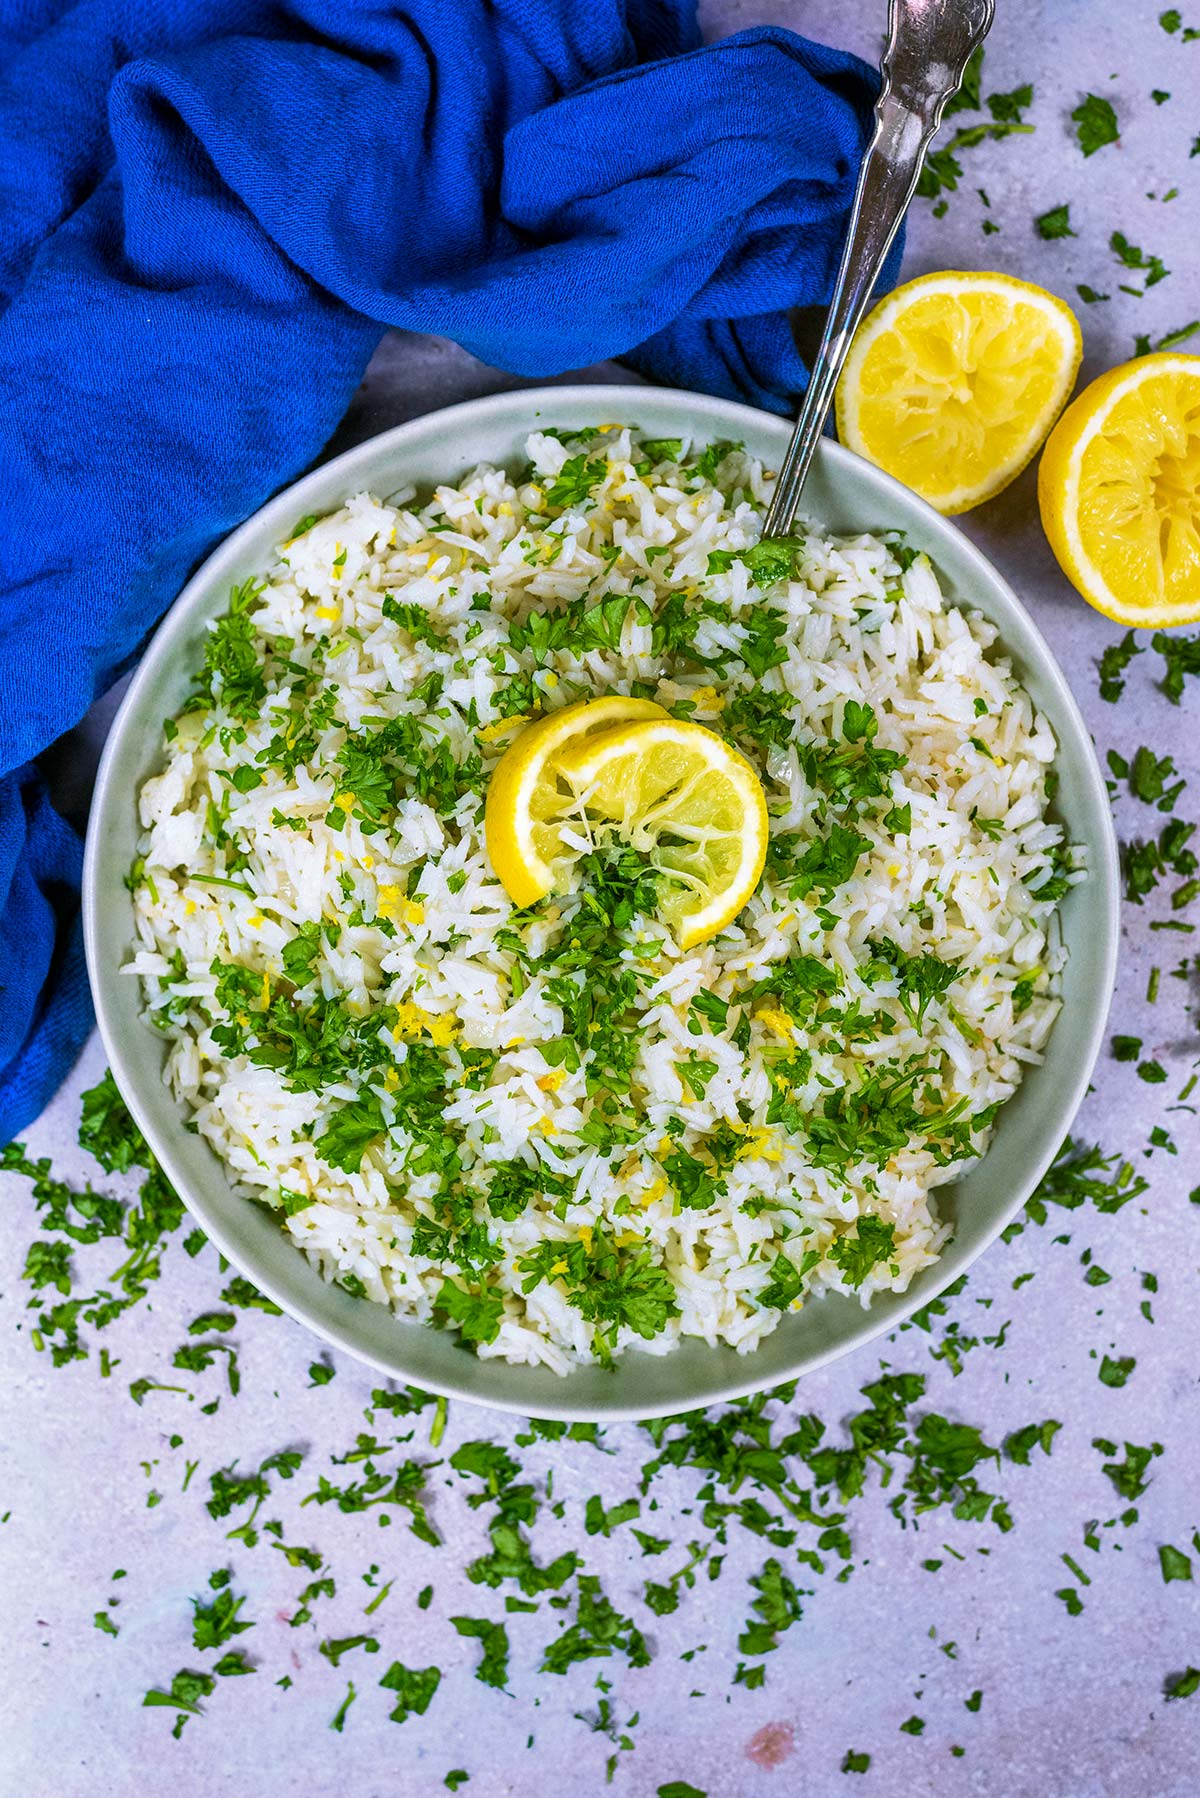 A large bowl of cooked rice, topped with chopped herbs and slices of lemon.